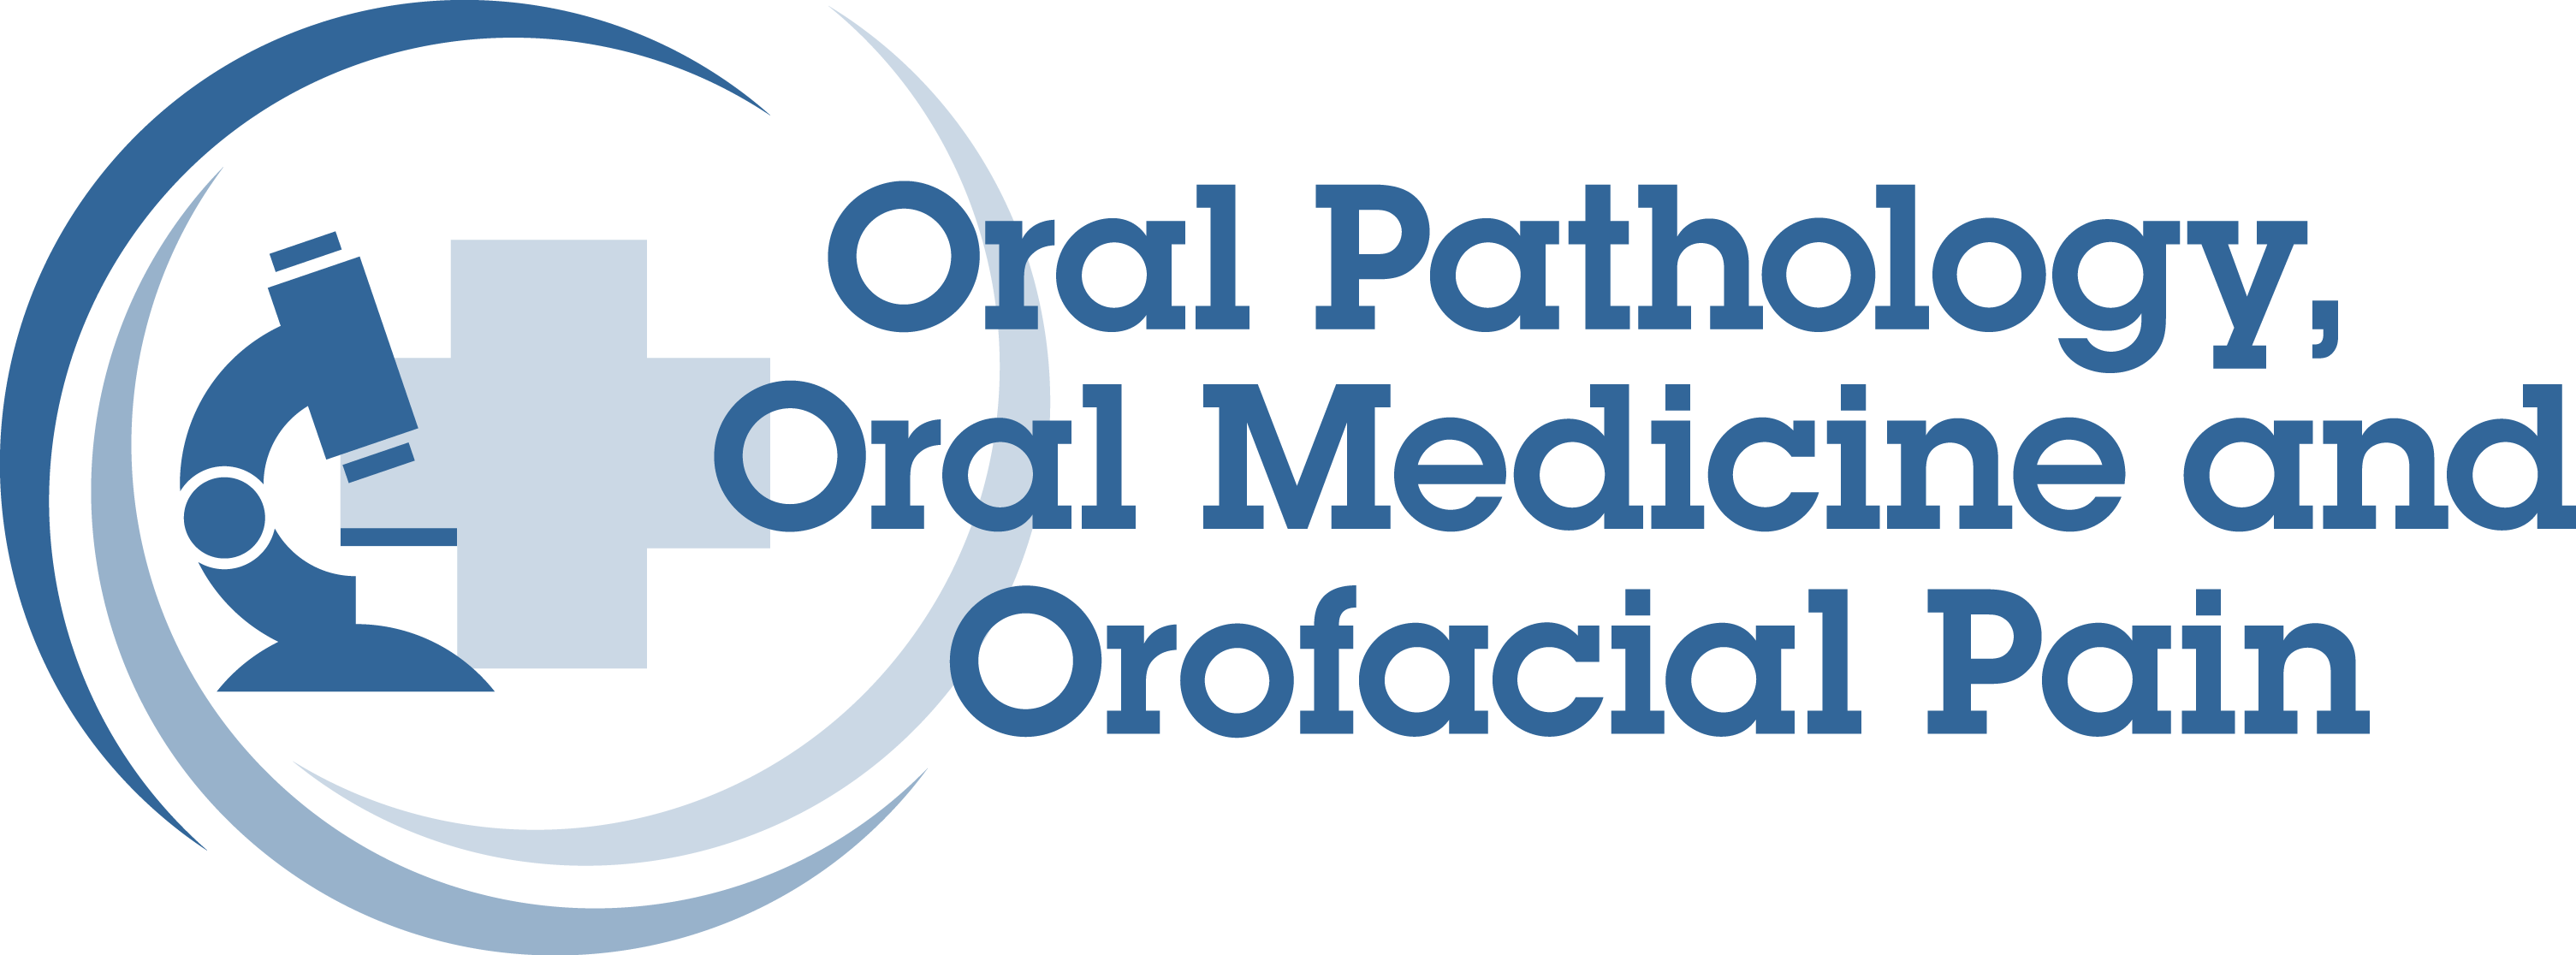 Oral Pathology, Oral Medicine and Orofacial Pain